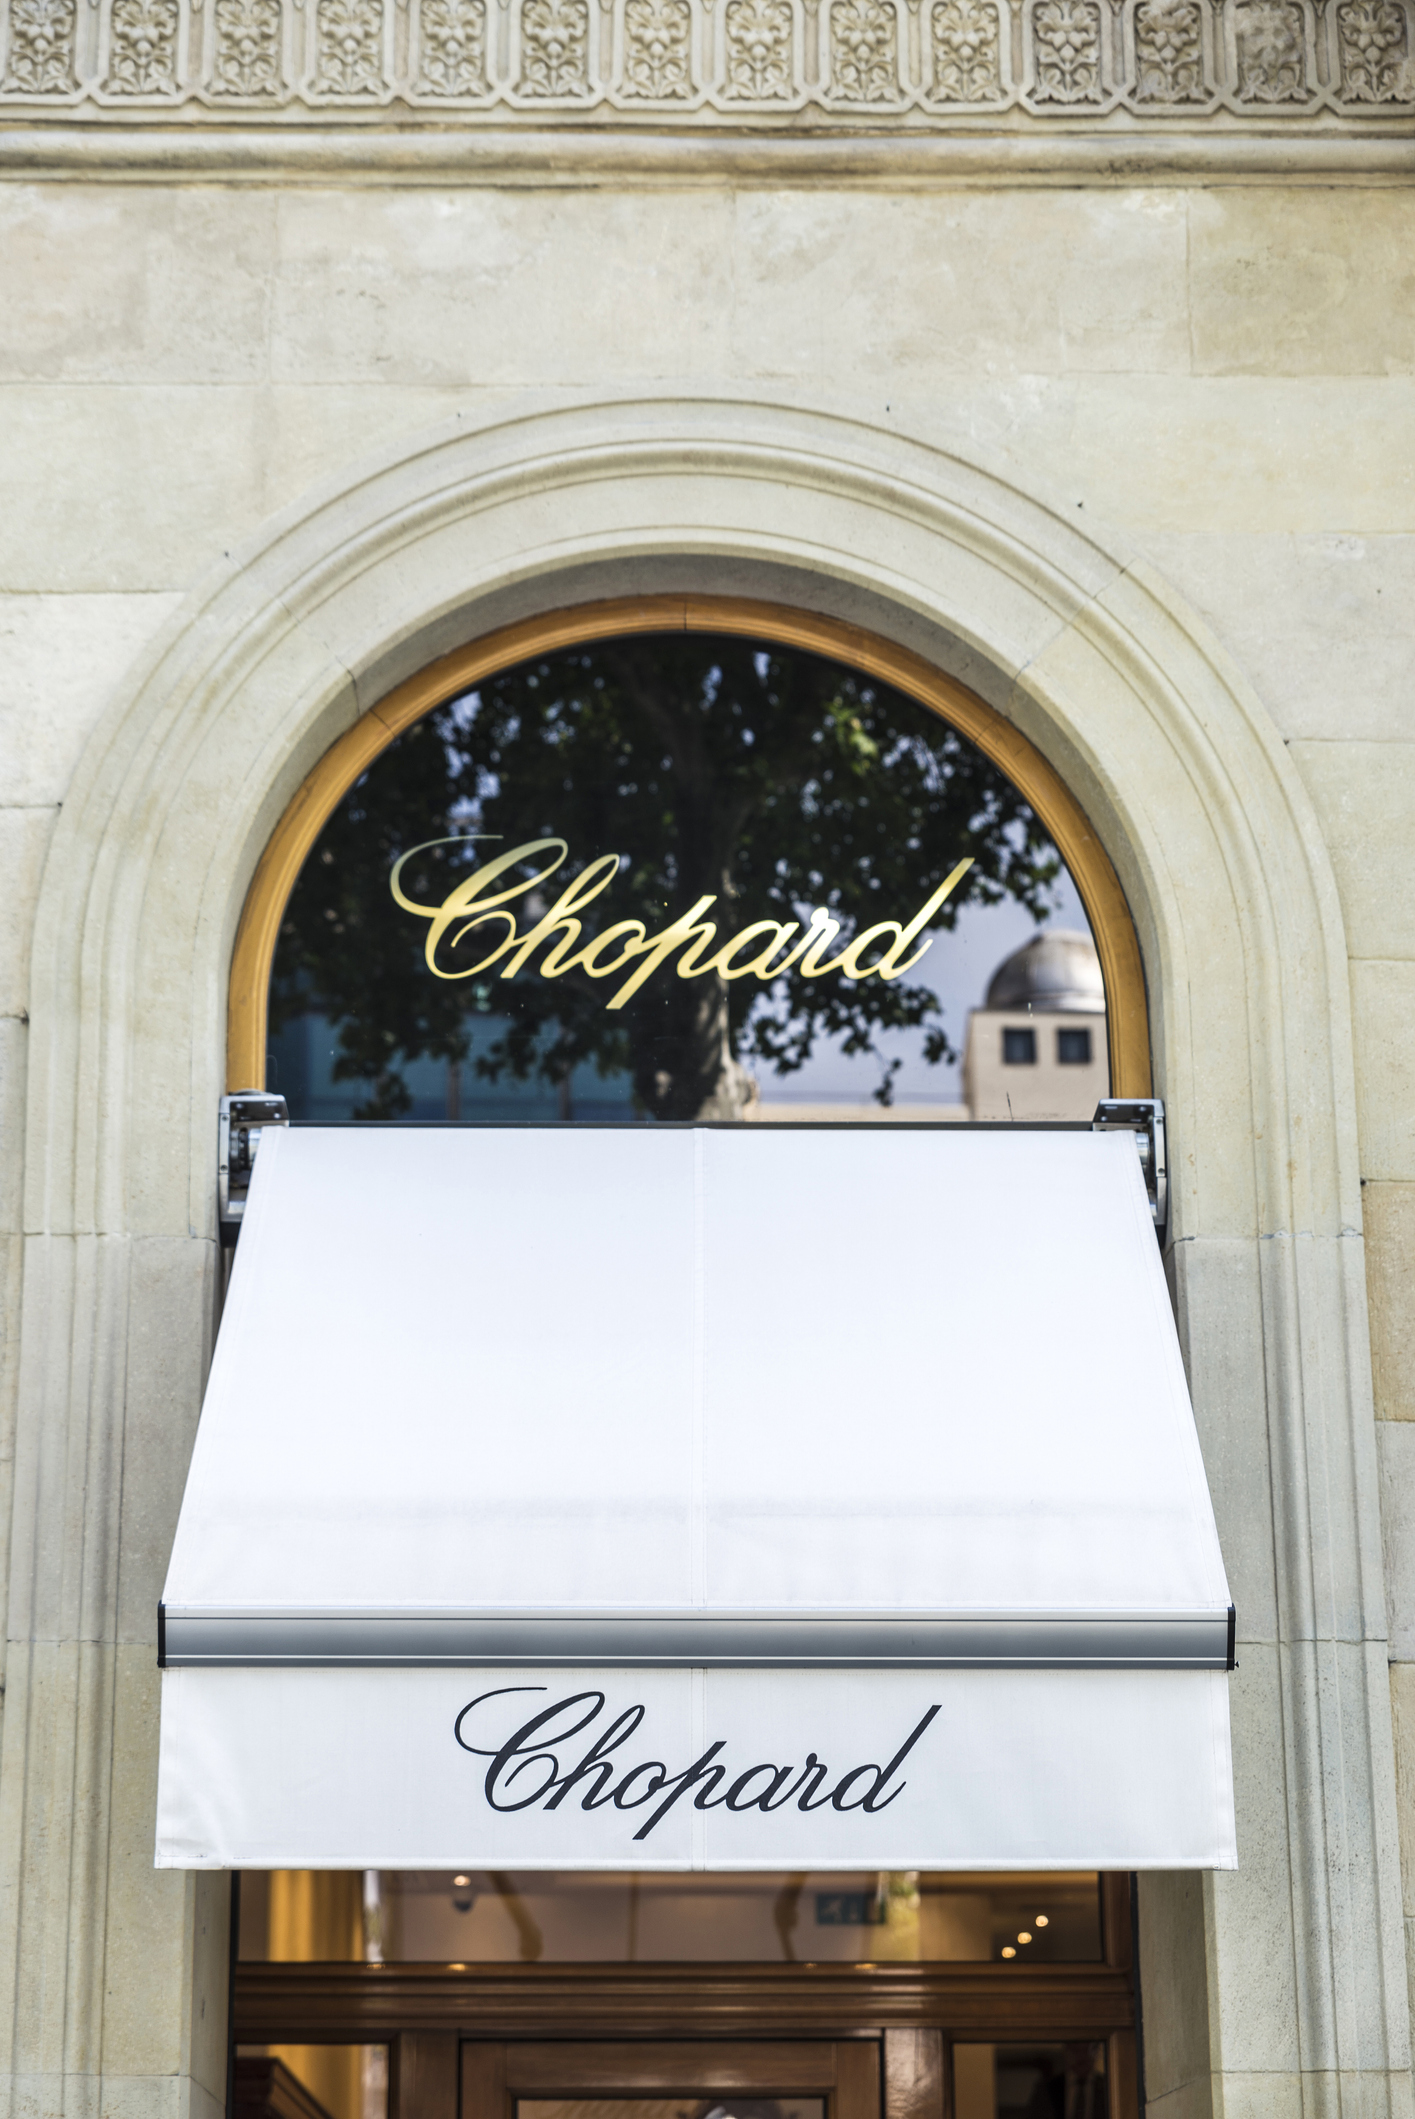 Chopard sustainability